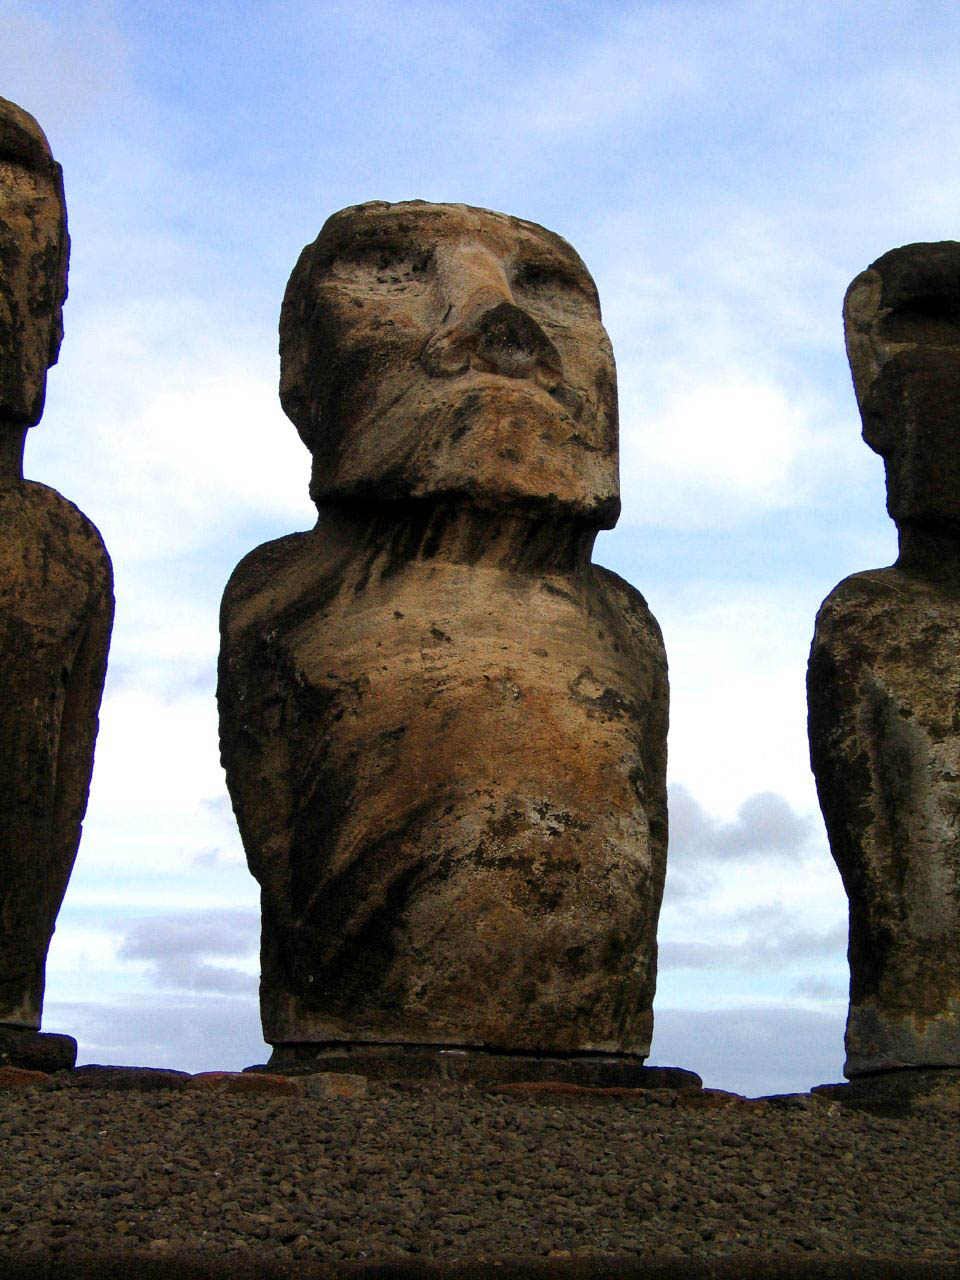 rapa nui9 Gigantic Moai Statues and Heads in Polynesian Easter Island